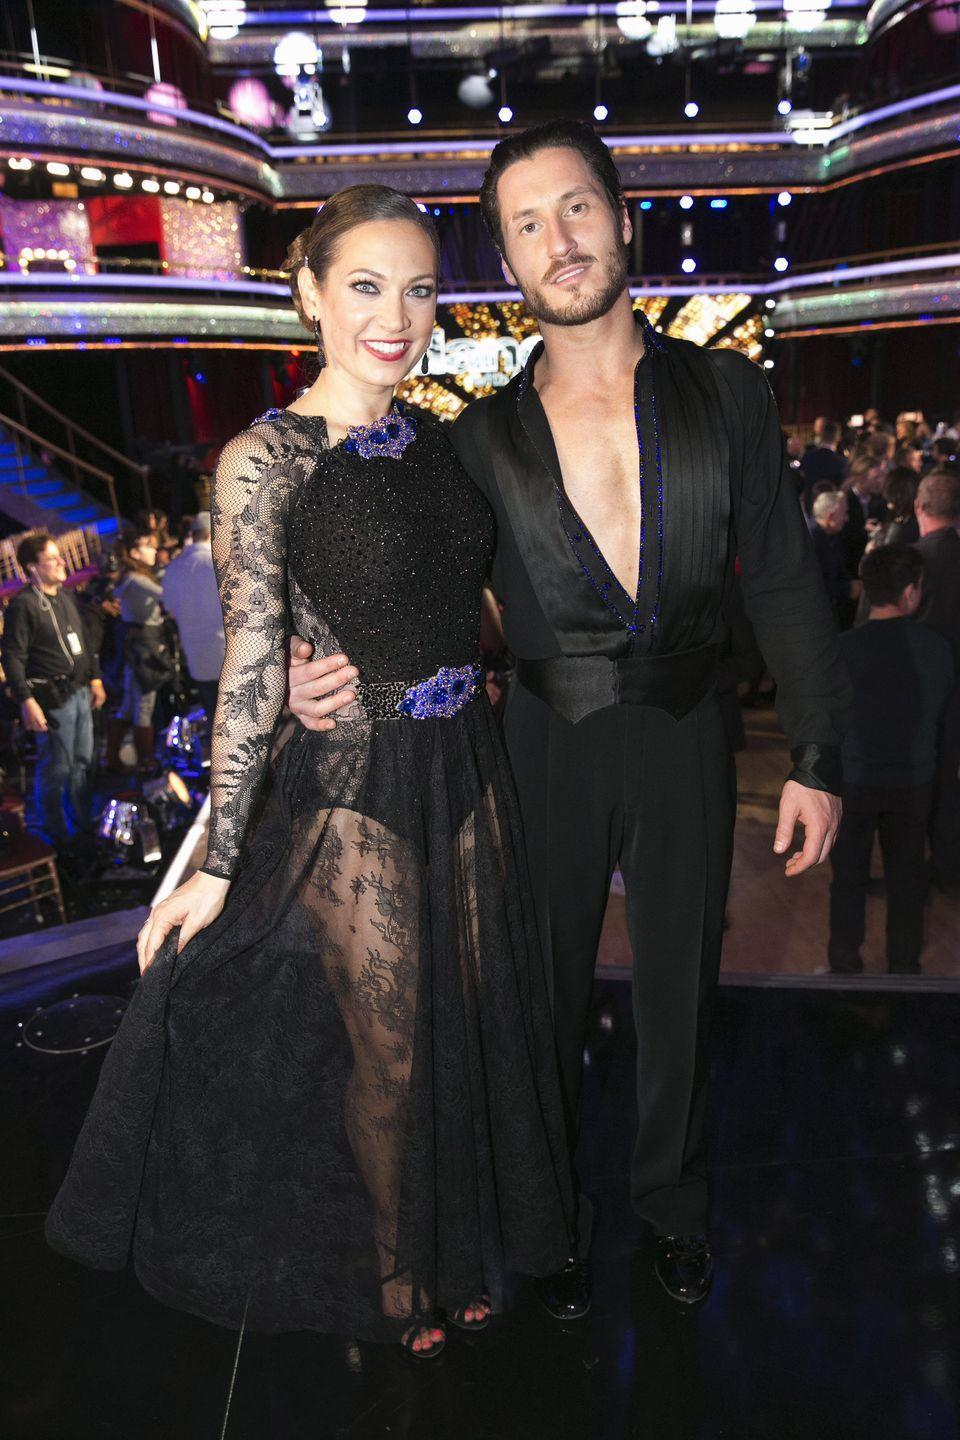 "<p>The <em>Today</em> meteorologist suffered a pelvis injury and back spasms right before the season finale of <em>DWTS </em>season 22, <em><a href=""https://people.com/tv/dancing-with-the-stars-injury-ginger-zees-future-in-finals-uncertain/"" rel=""nofollow noopener"" target=""_blank"" data-ylk=""slk:People"" class=""link rapid-noclick-resp"">People</a></em> reported. </p><p>""Right now she can't dance at 100 percent and [troupe member] Jenna Johnson is standing in for her during camera blocking today,"" a source told the publication. ""She won't know until tomorrow if she can do the dances. Ginger is seeing the show's physical therapist and is resting so that hopefully she will be able to dance tomorrow night."" Ginger was still able to perform with her pro partner Val Chmerkovskiy. </p>"